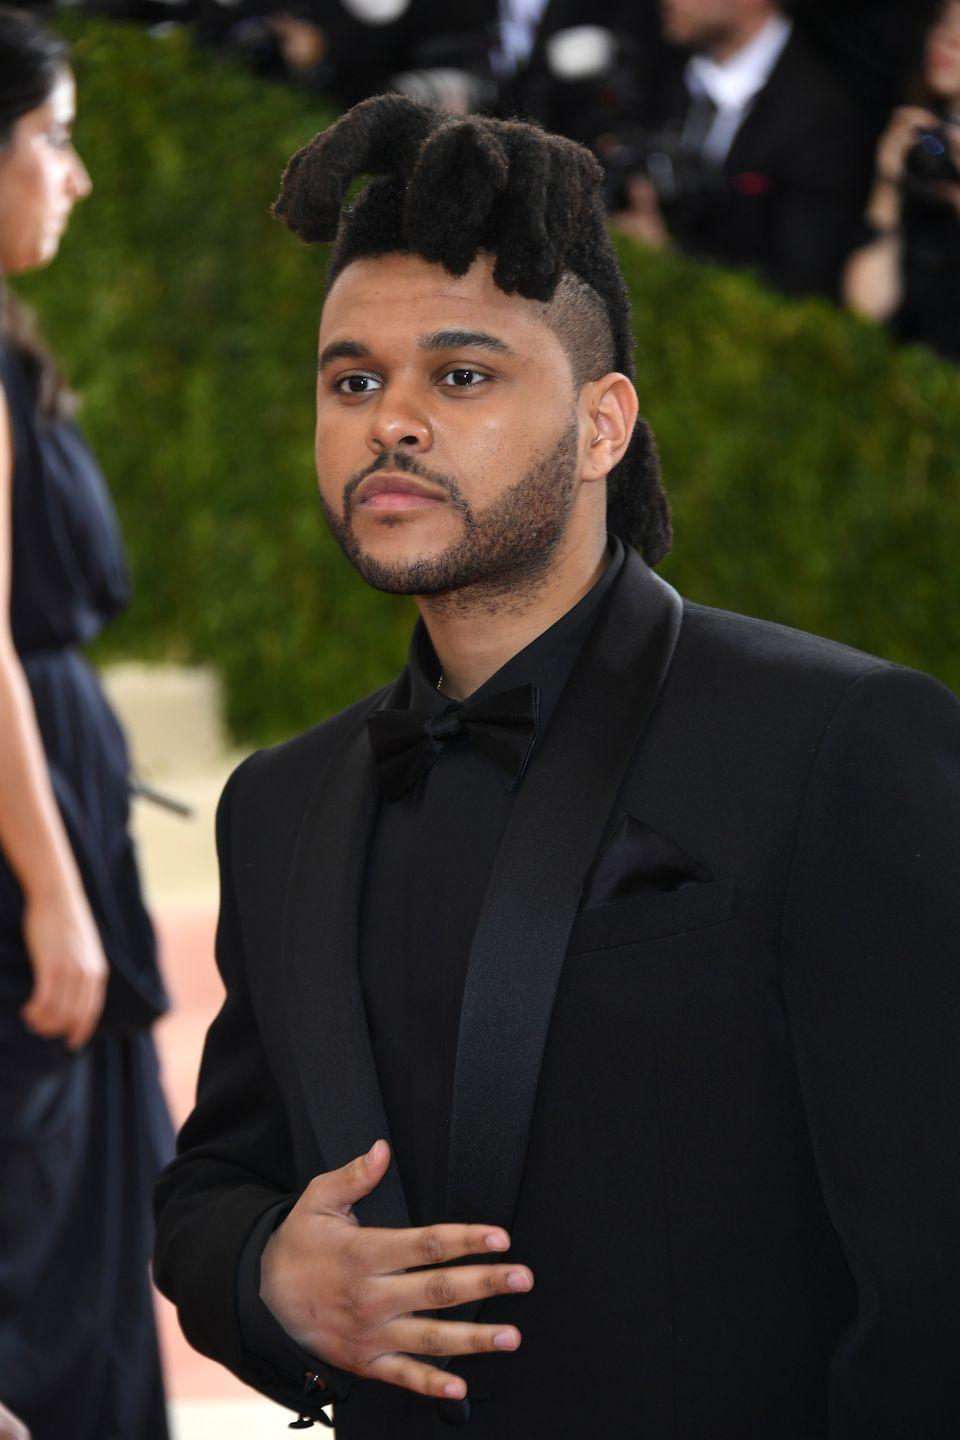 <p>A slightly modified style with more defined locs was The Weeknd's look of choice while accompanying his model girlfriend, Bella Hadid, to the 2016 Met Gala. </p>